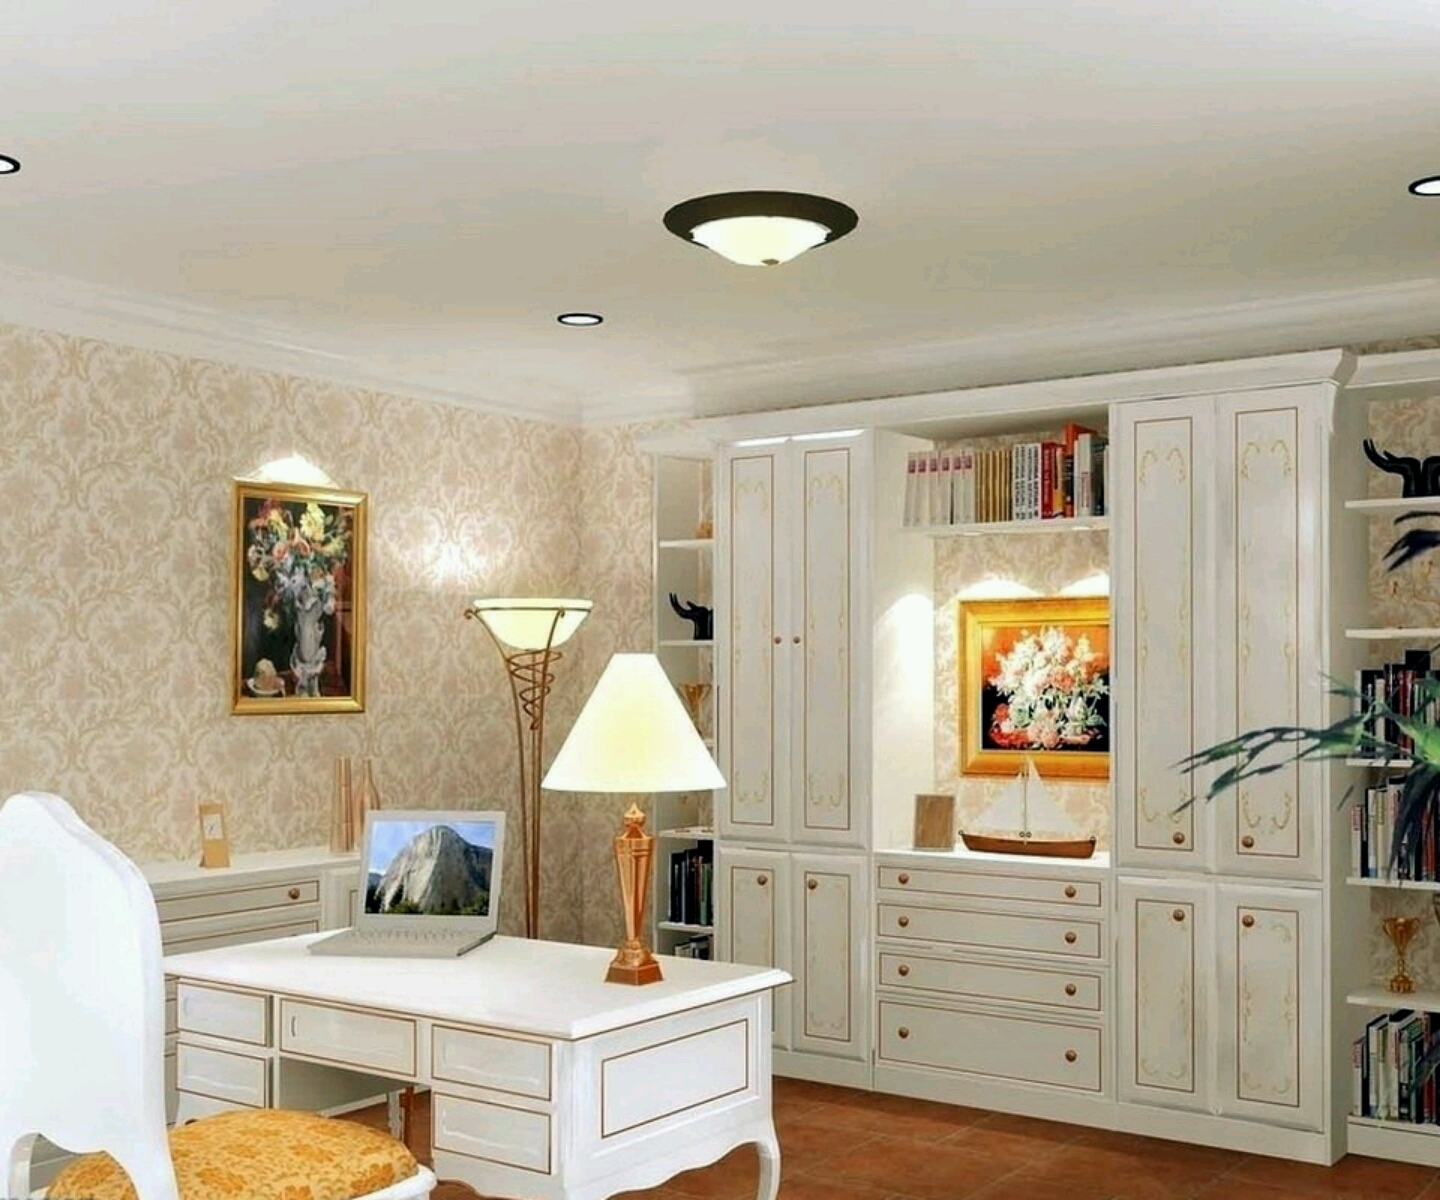 hekman armoire 20 images revger com armoire grande. Black Bedroom Furniture Sets. Home Design Ideas